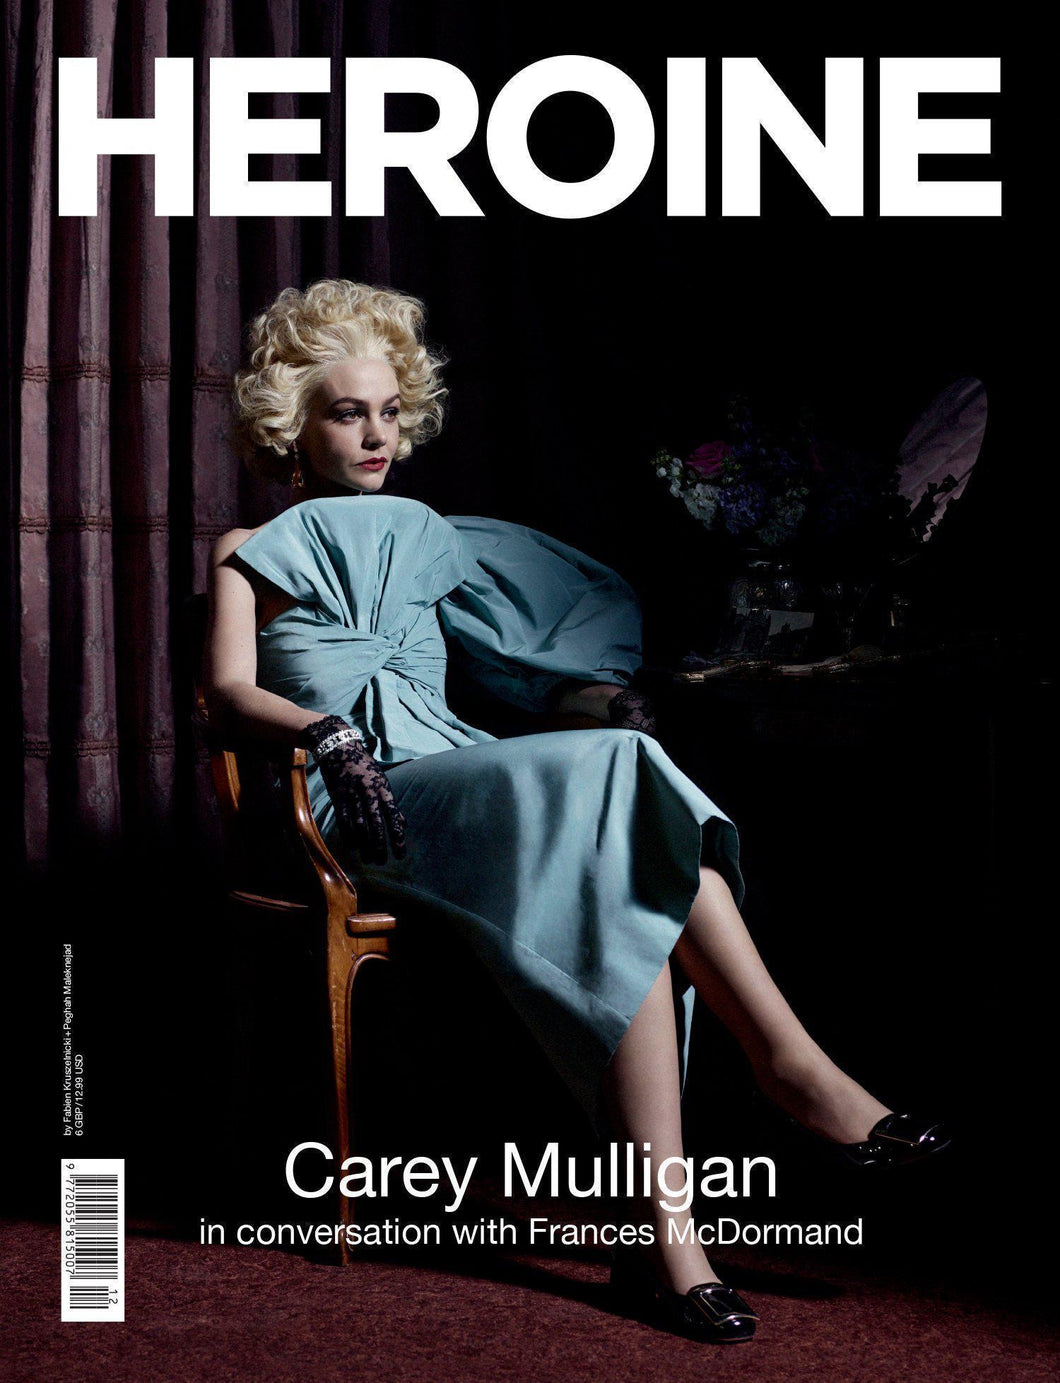 HEROINE / Issue 012 / Carey Mulligan - Magazine